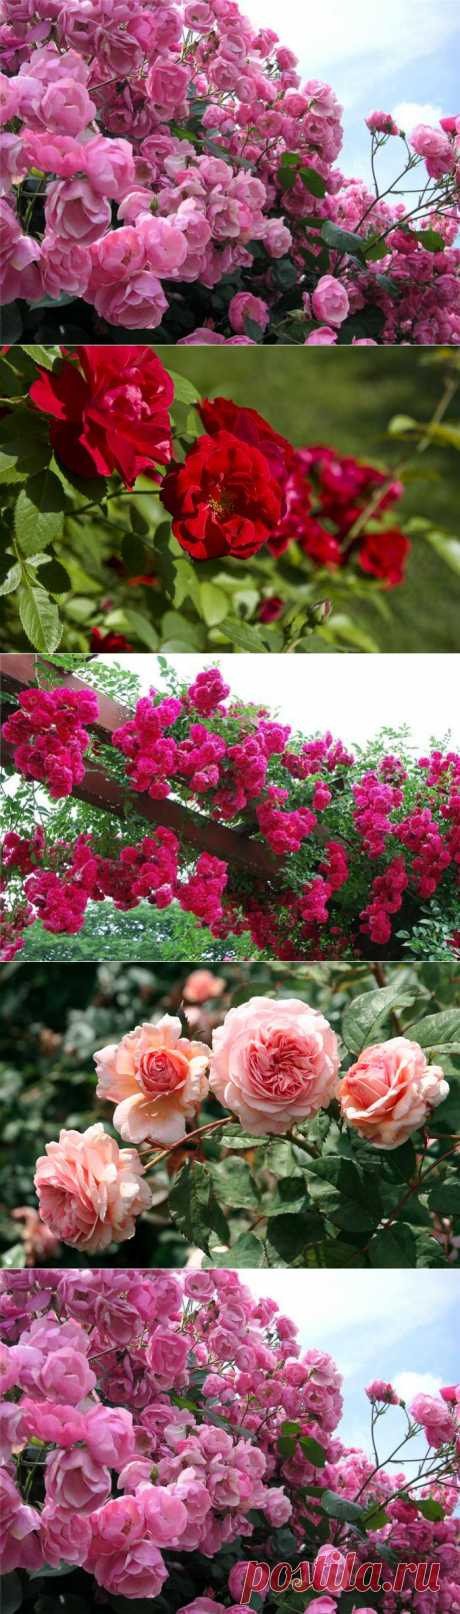 Preparation of roses for winter! Overalls for works in a garden!.